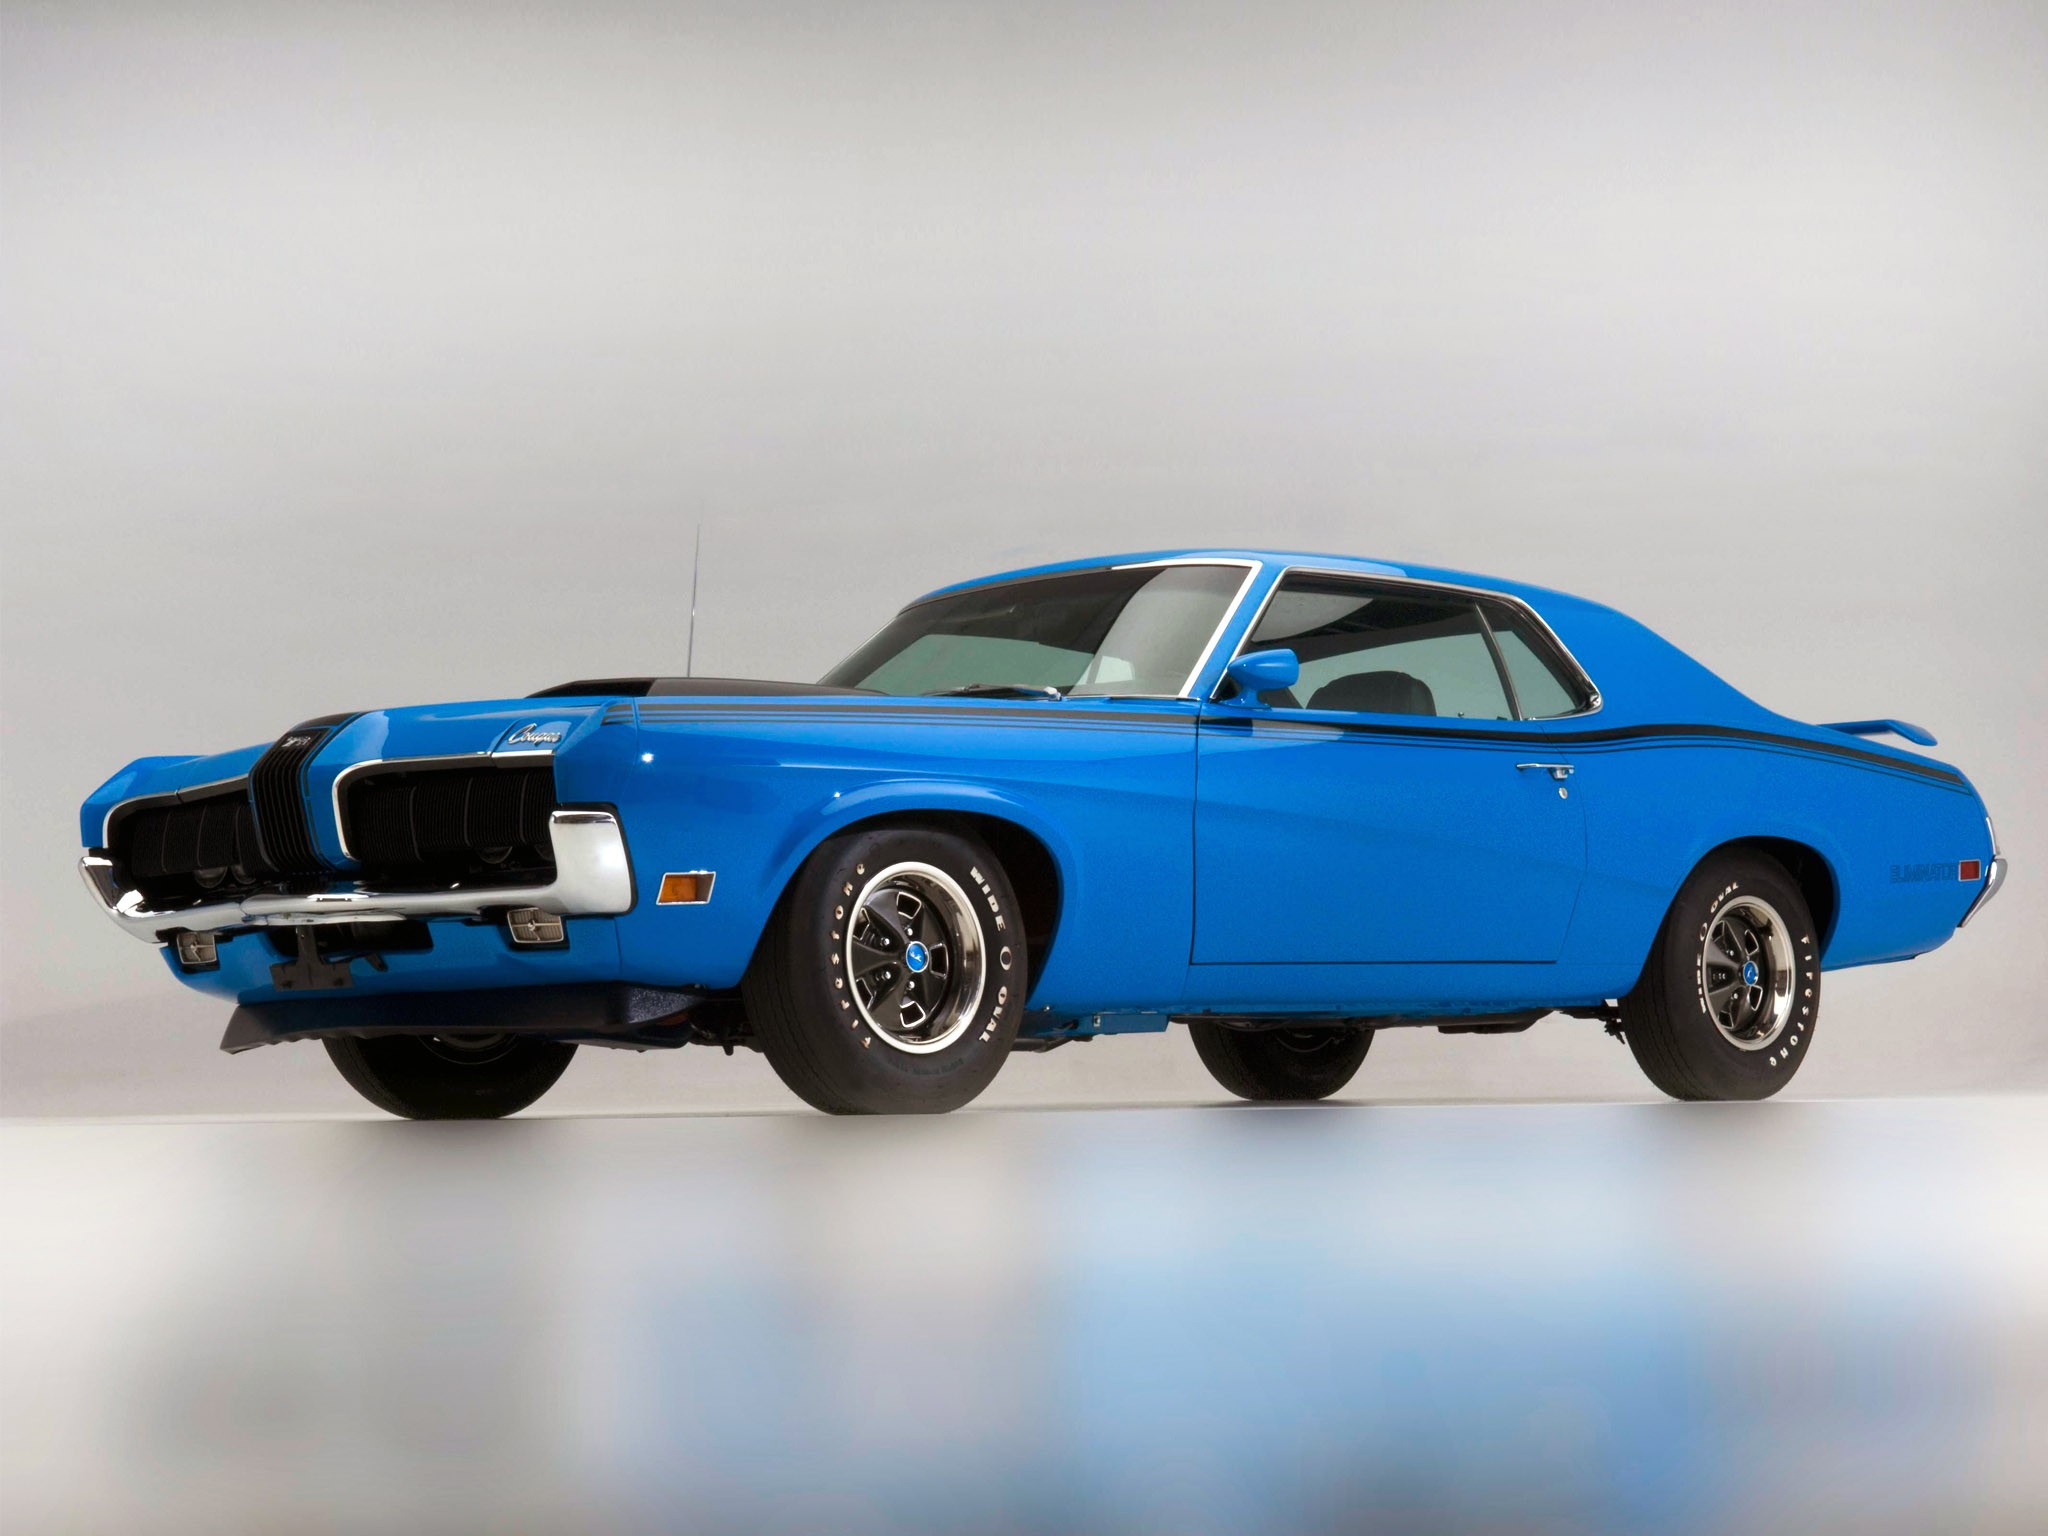 1970 Lincoln Mercury Cougar Eliminator 428 Super Cobra Jet